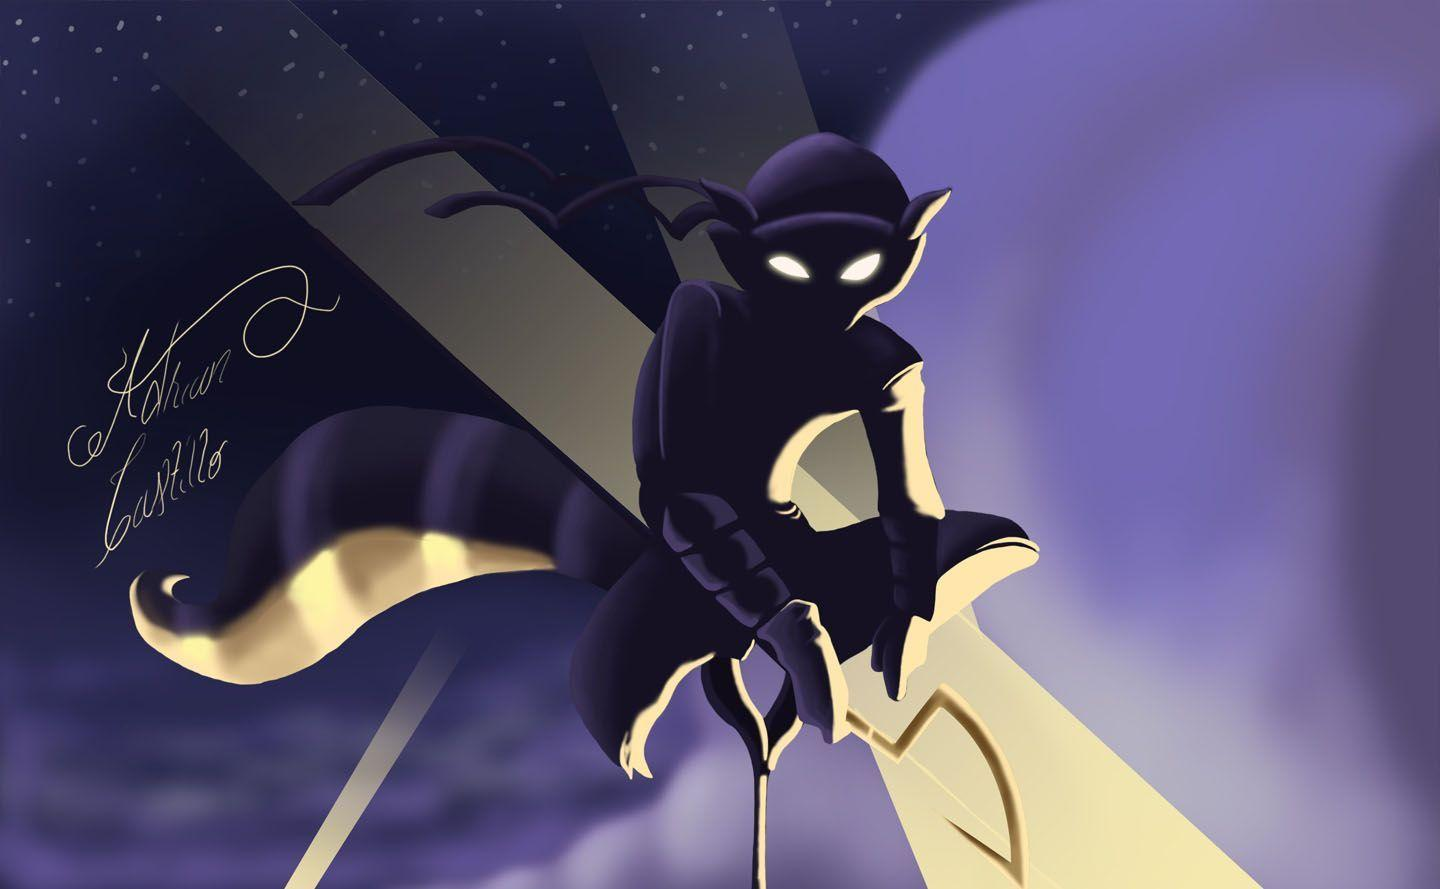 Sly Cooper Wallpapers 1440x889